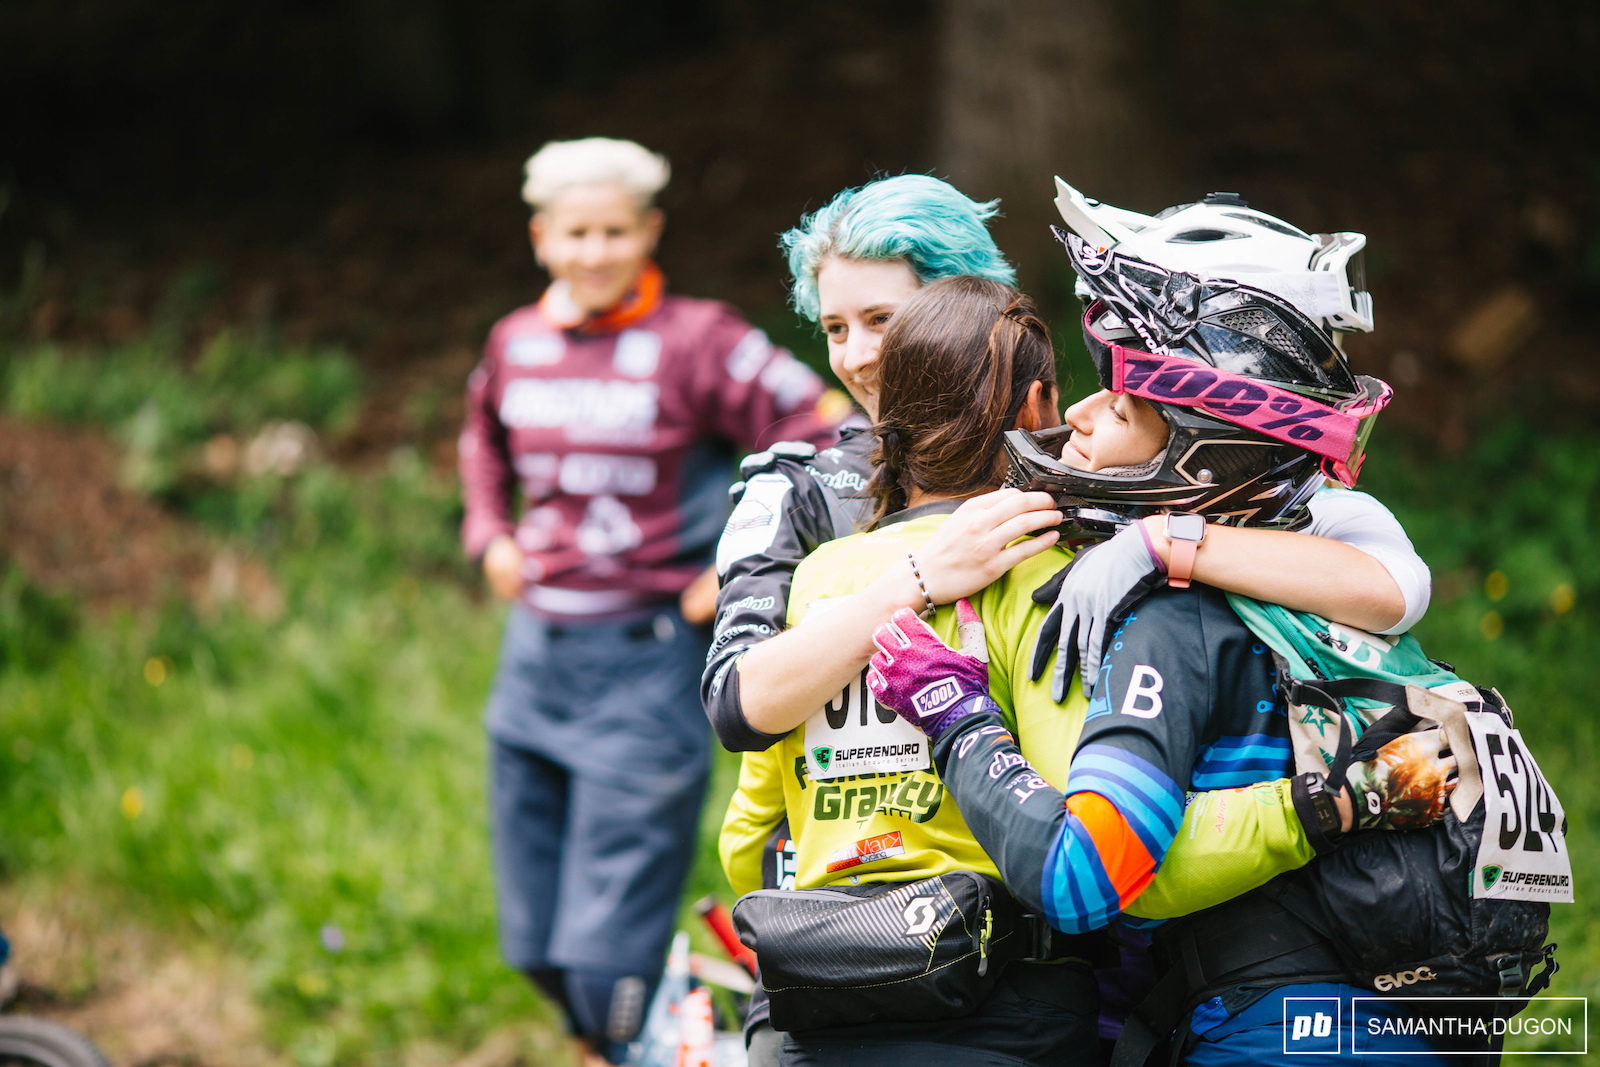 Nothing like some friendly love and support before heading off for a days racing.